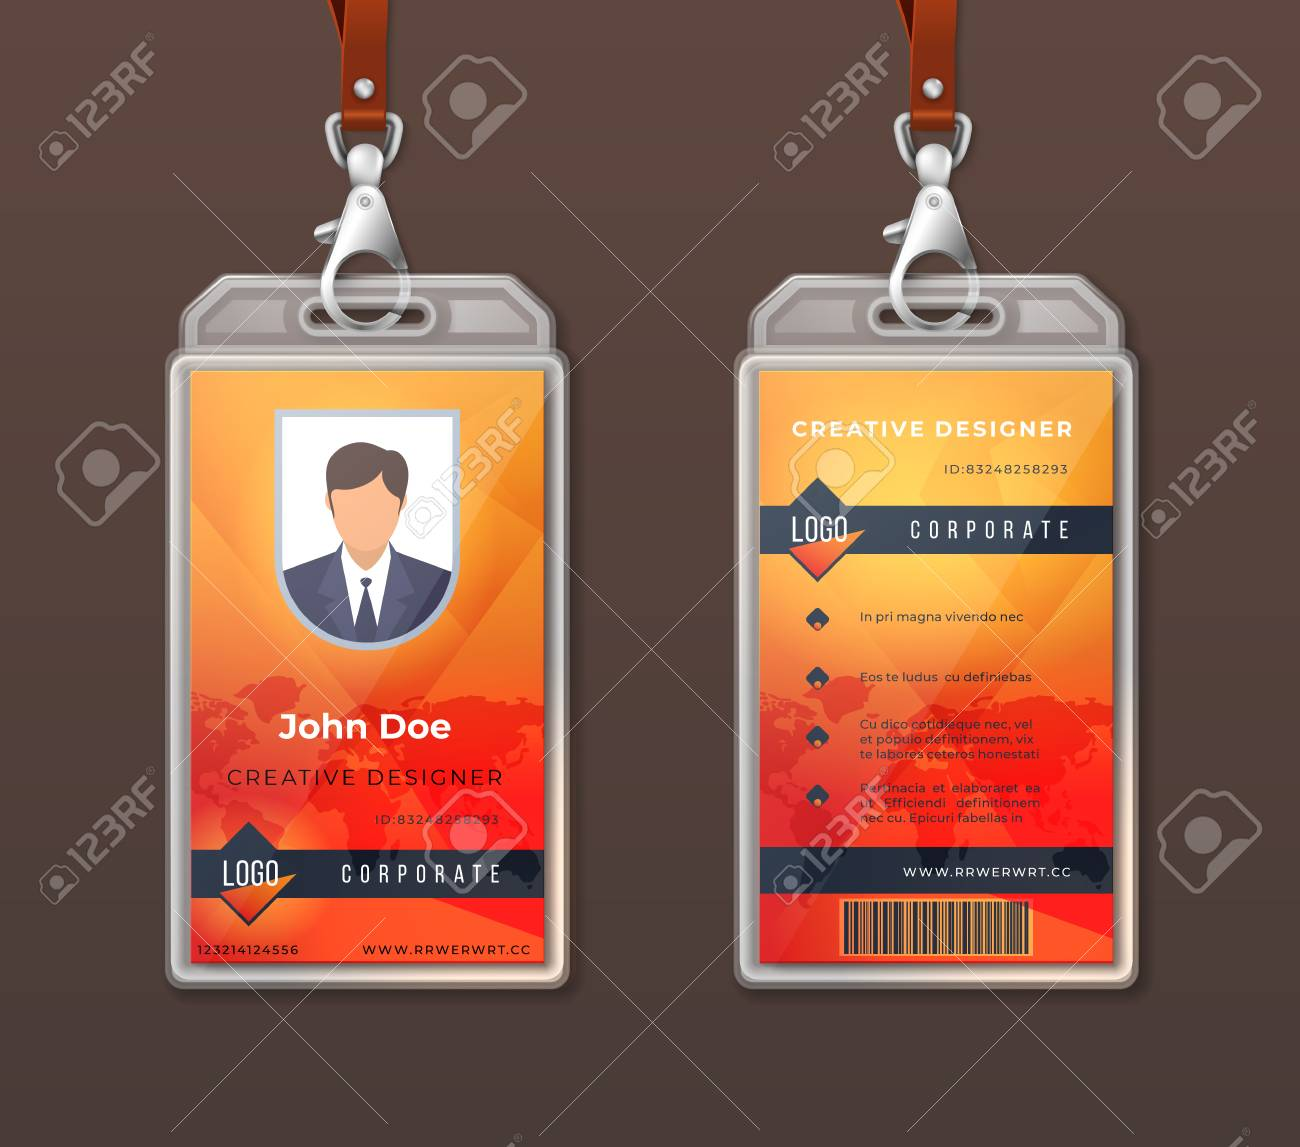 Id Card Corporate Identity Employee Access Badge Design Template Royalty Free Cliparts Vectors And Stock Illustration Image 125296008